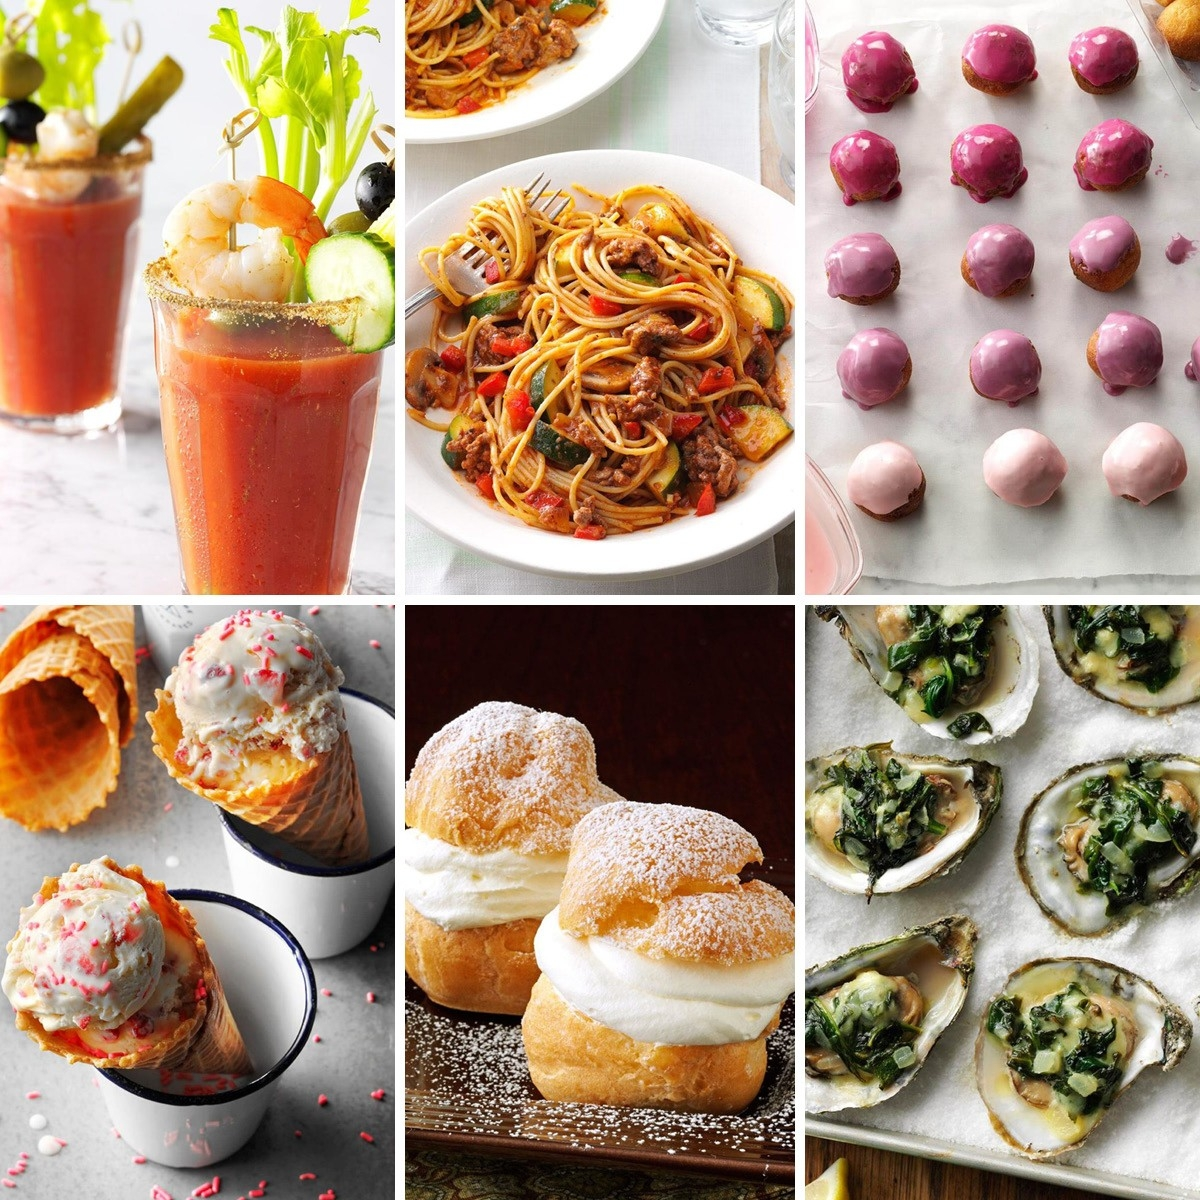 Here's What To Make On All The National Food Holidays-Calendar Of National Food Holidays 2020